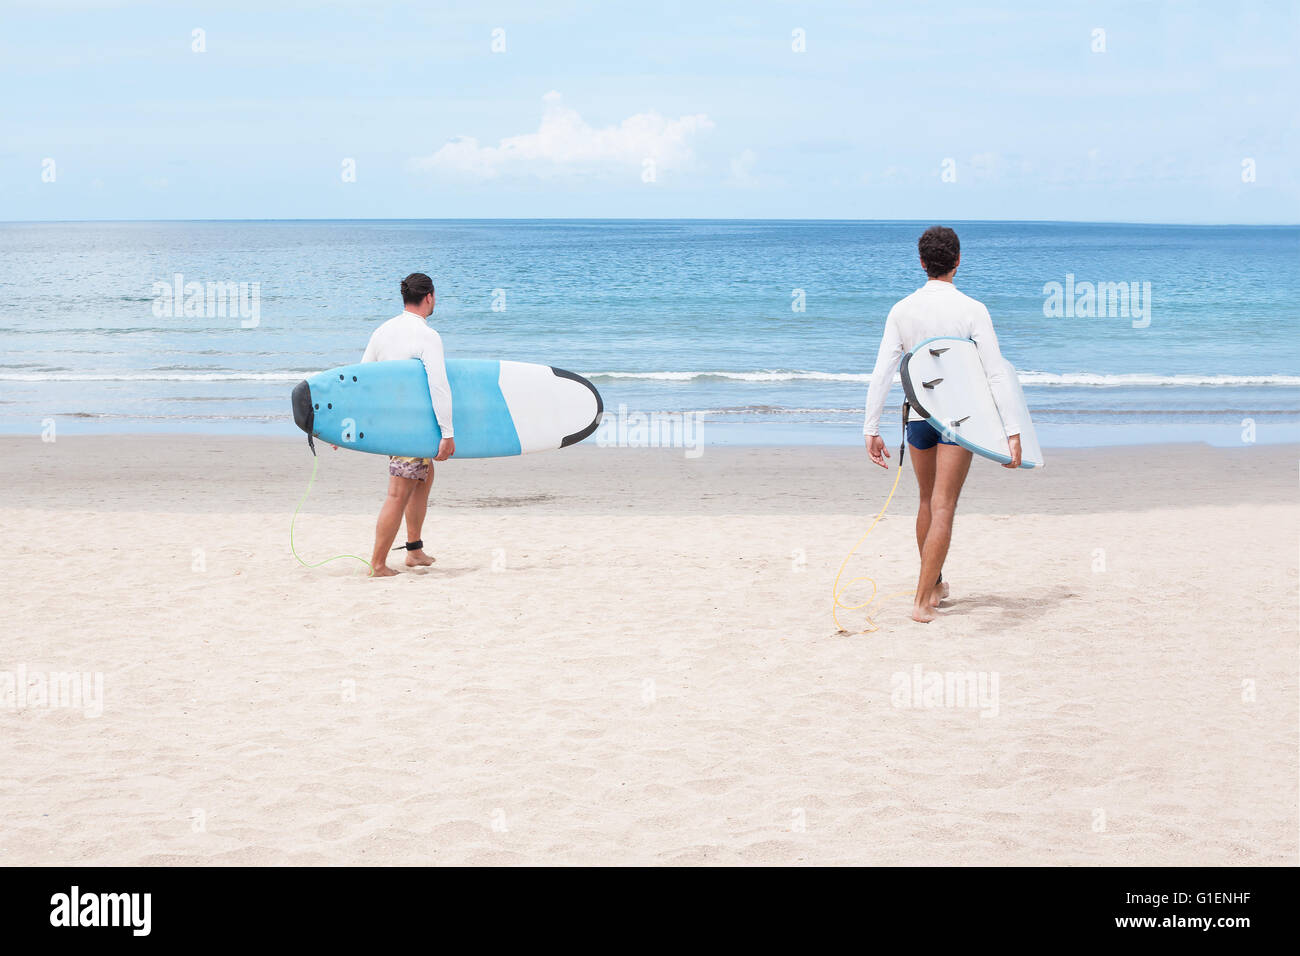 Ready for surfing - Stock Image